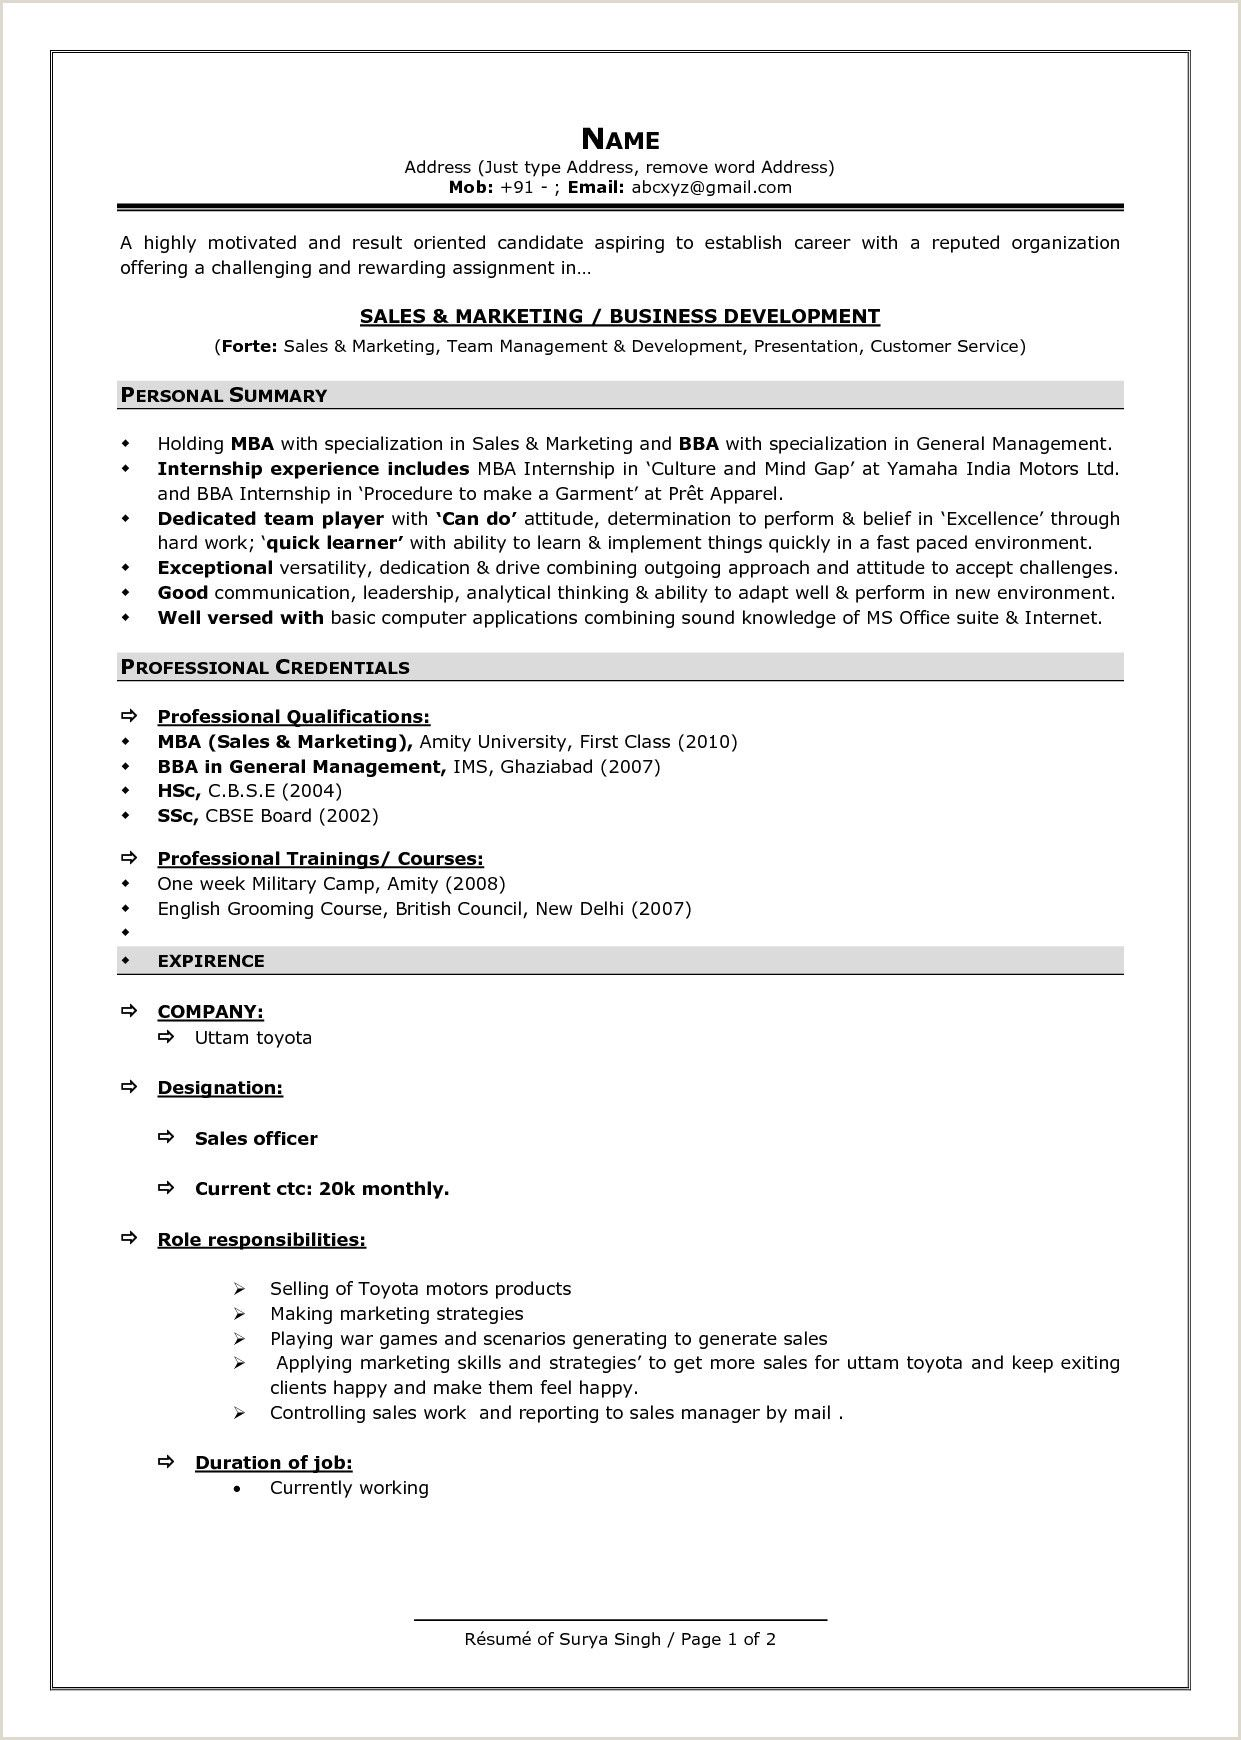 Bba Fresher Resume format Doc in 2020 Best resume format